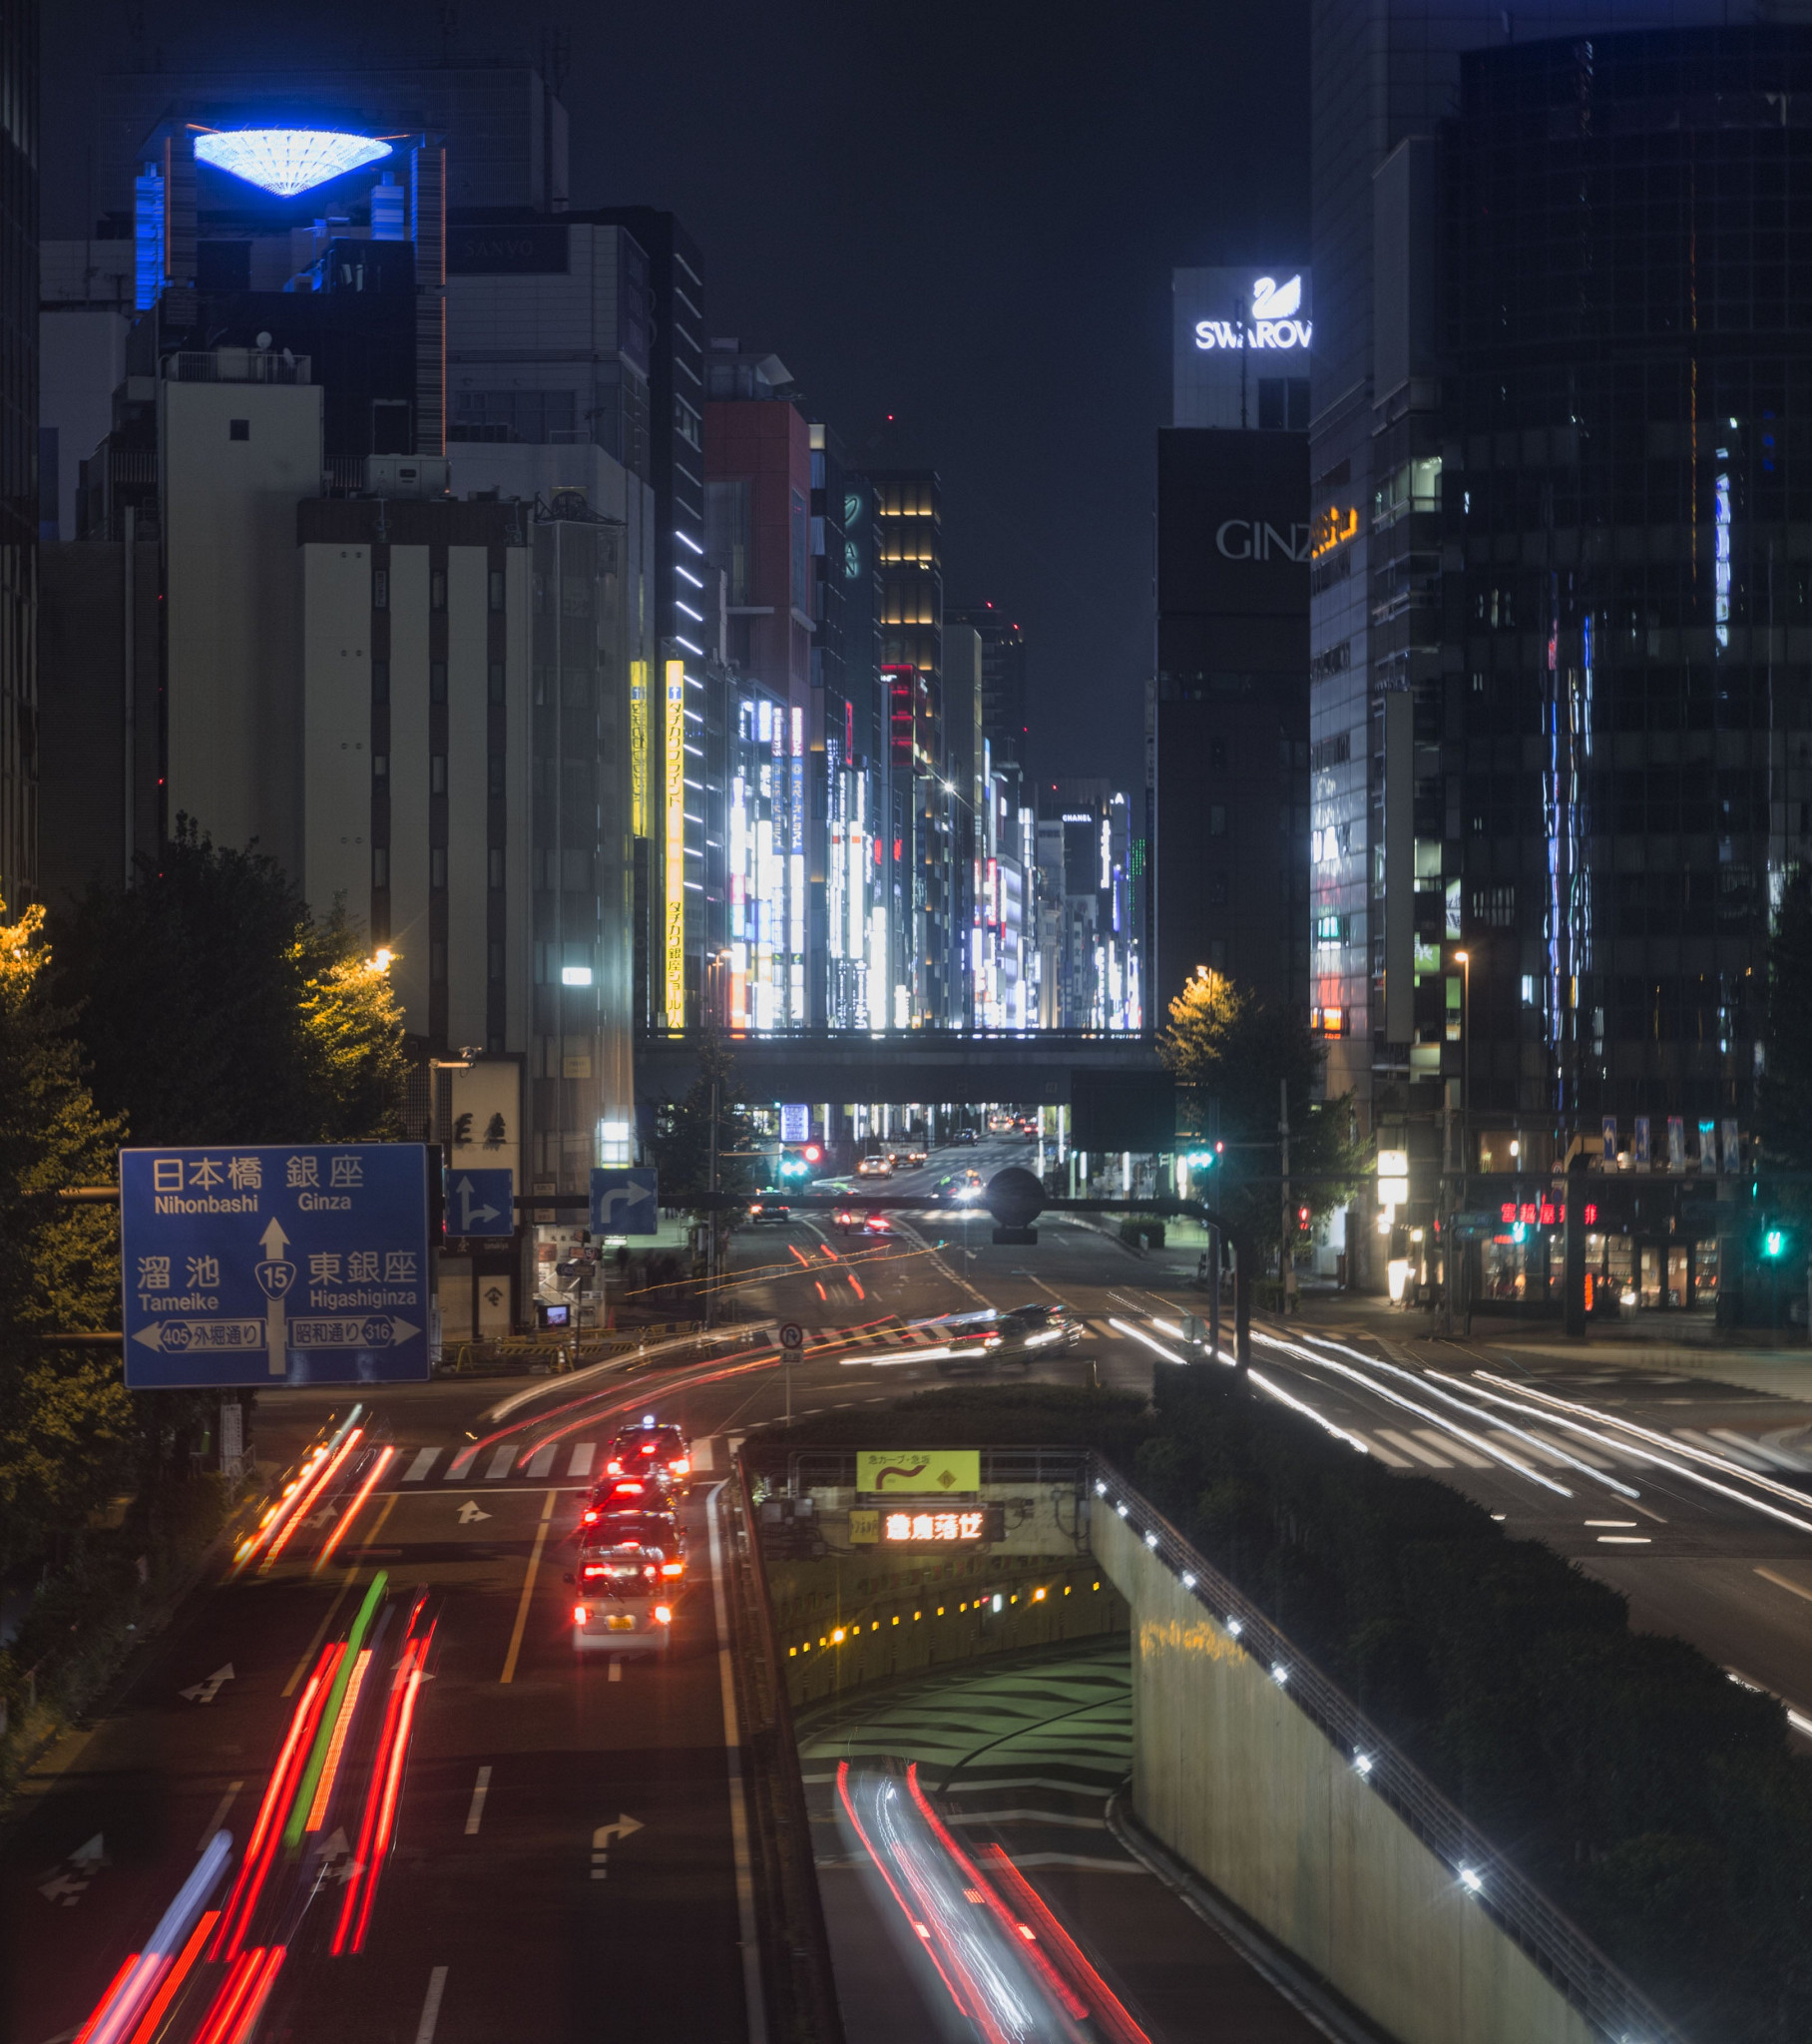 Long exposure looking out over Tokyo